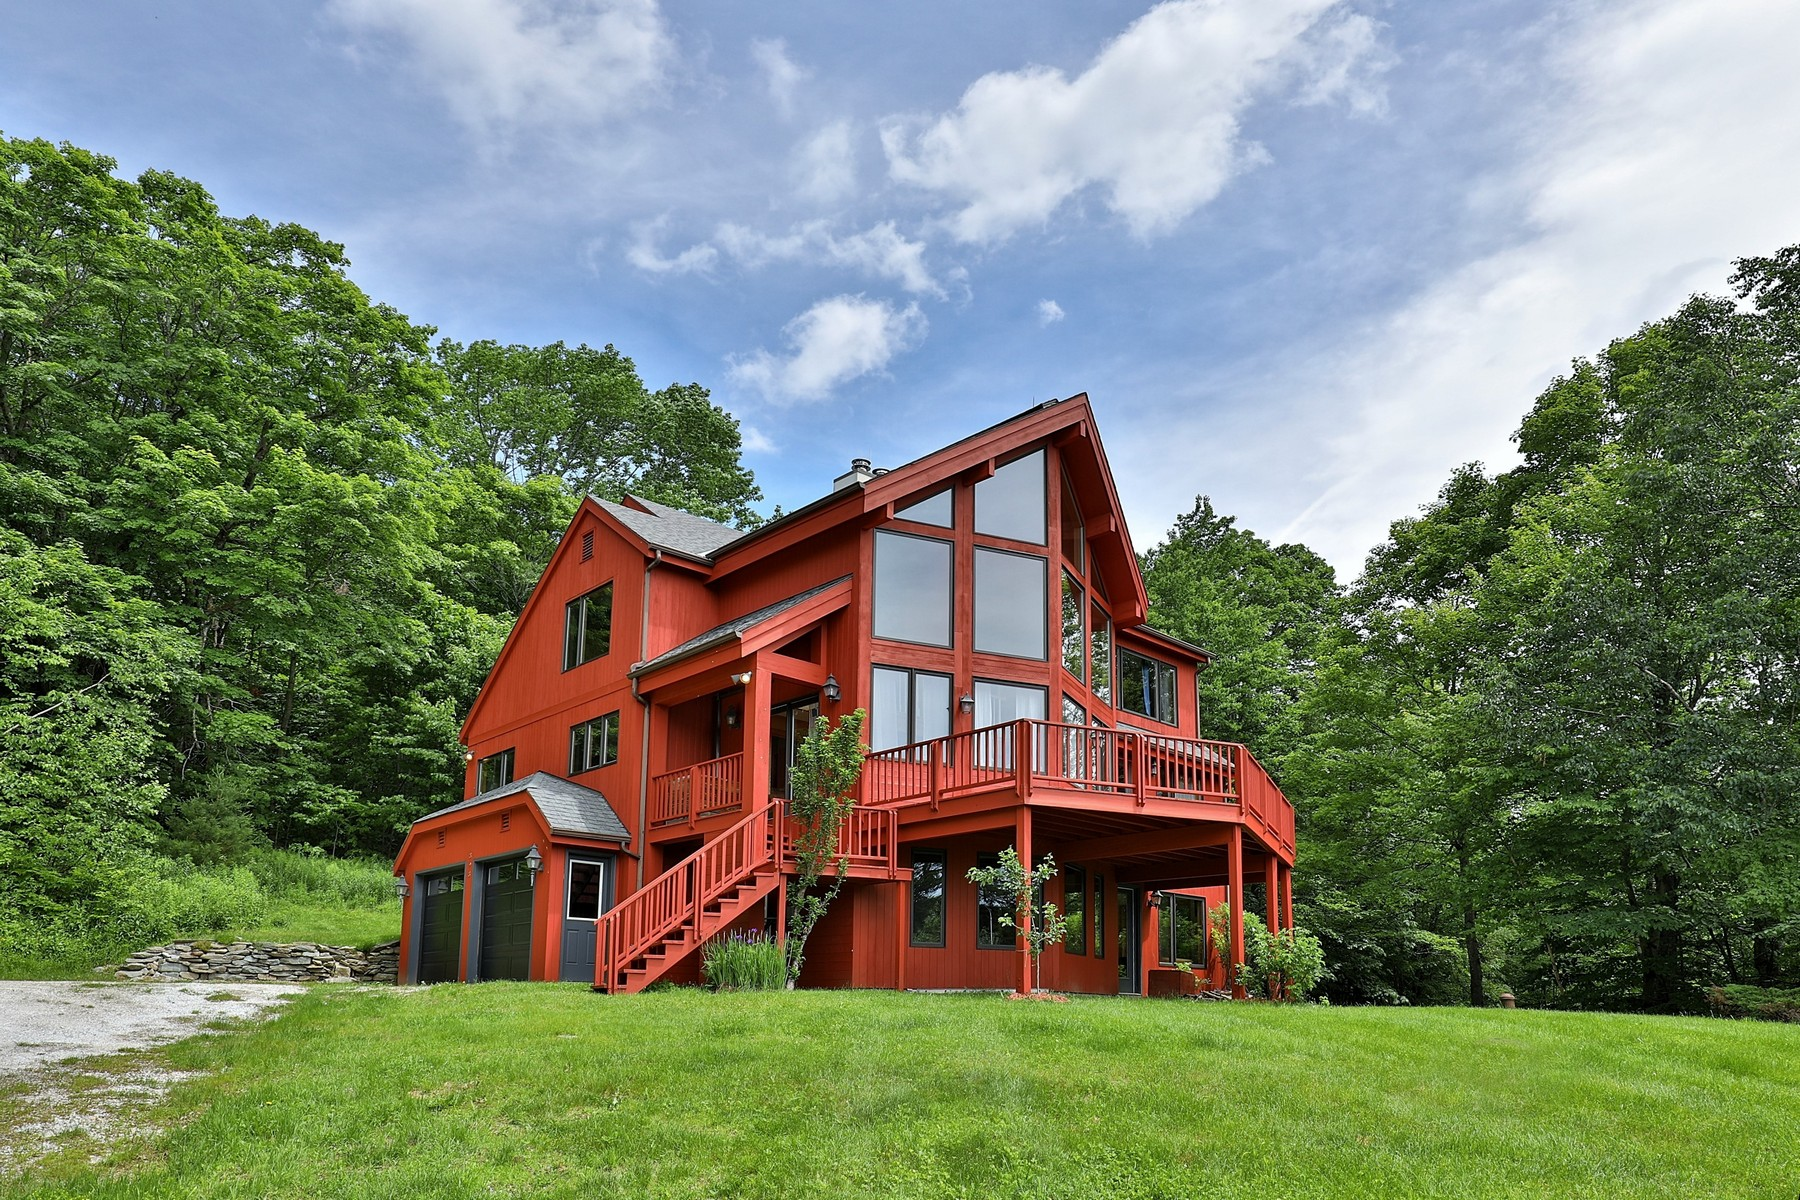 Single Family Homes for Sale at Vermont Country Living 898 Ccc Road Shrewsbury, Vermont 05738 United States